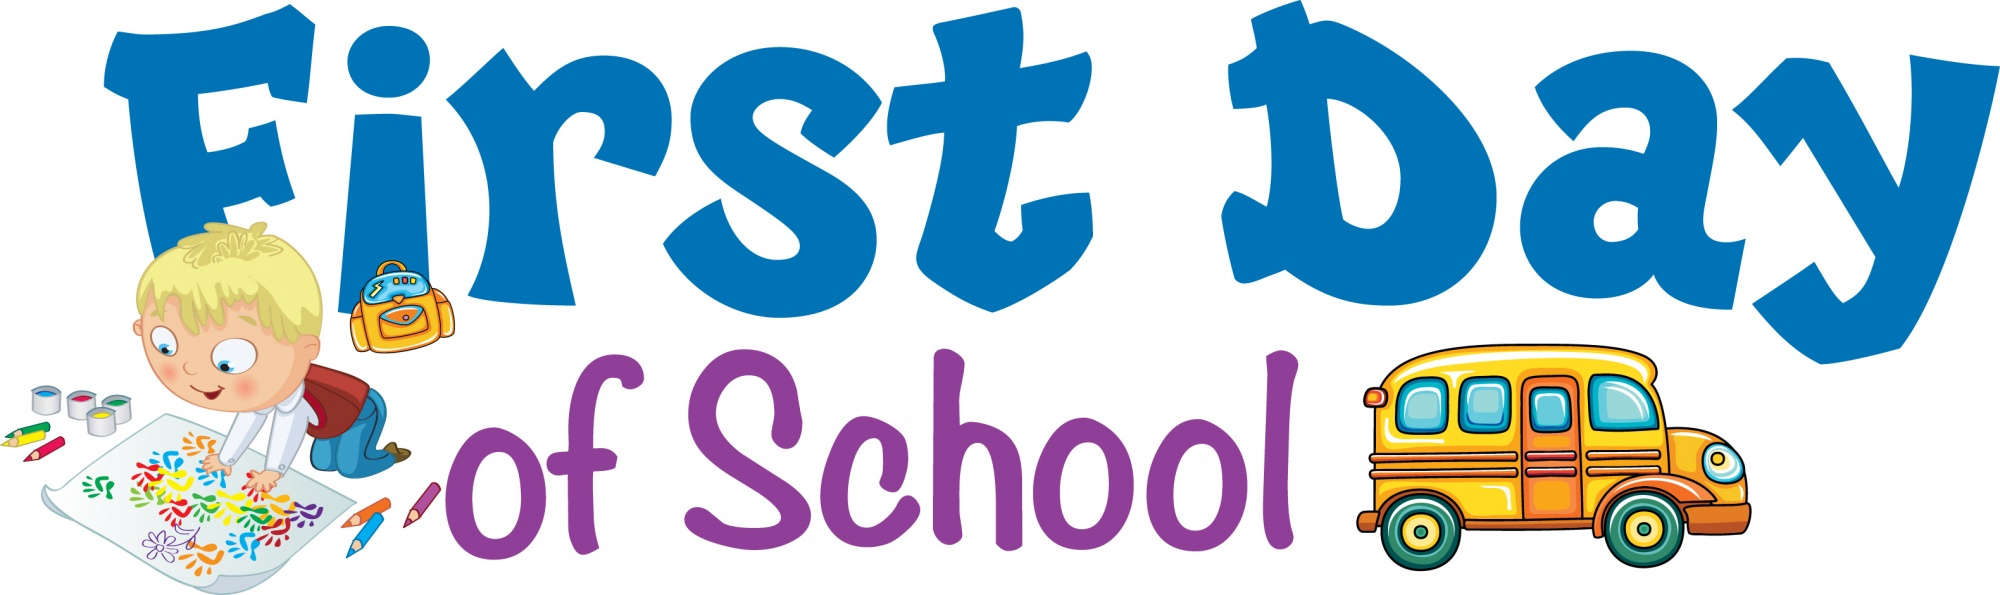 First Day Of School Images | Free Download Clip Art | Free Clip .